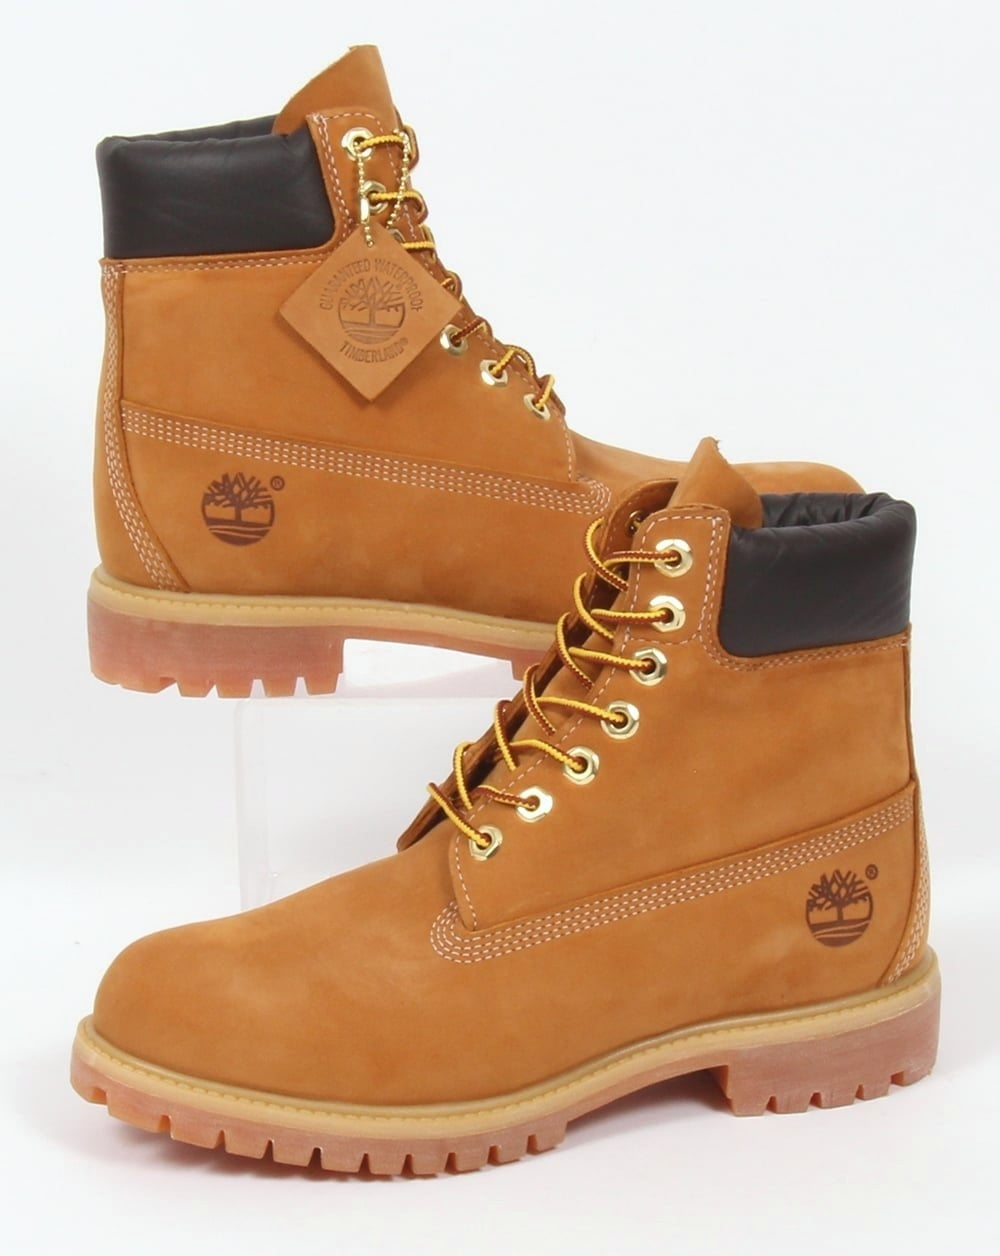 Timberland Timberland Icon 6 Inch Premium Boots Wheat Nubuck f6d36fd642e2